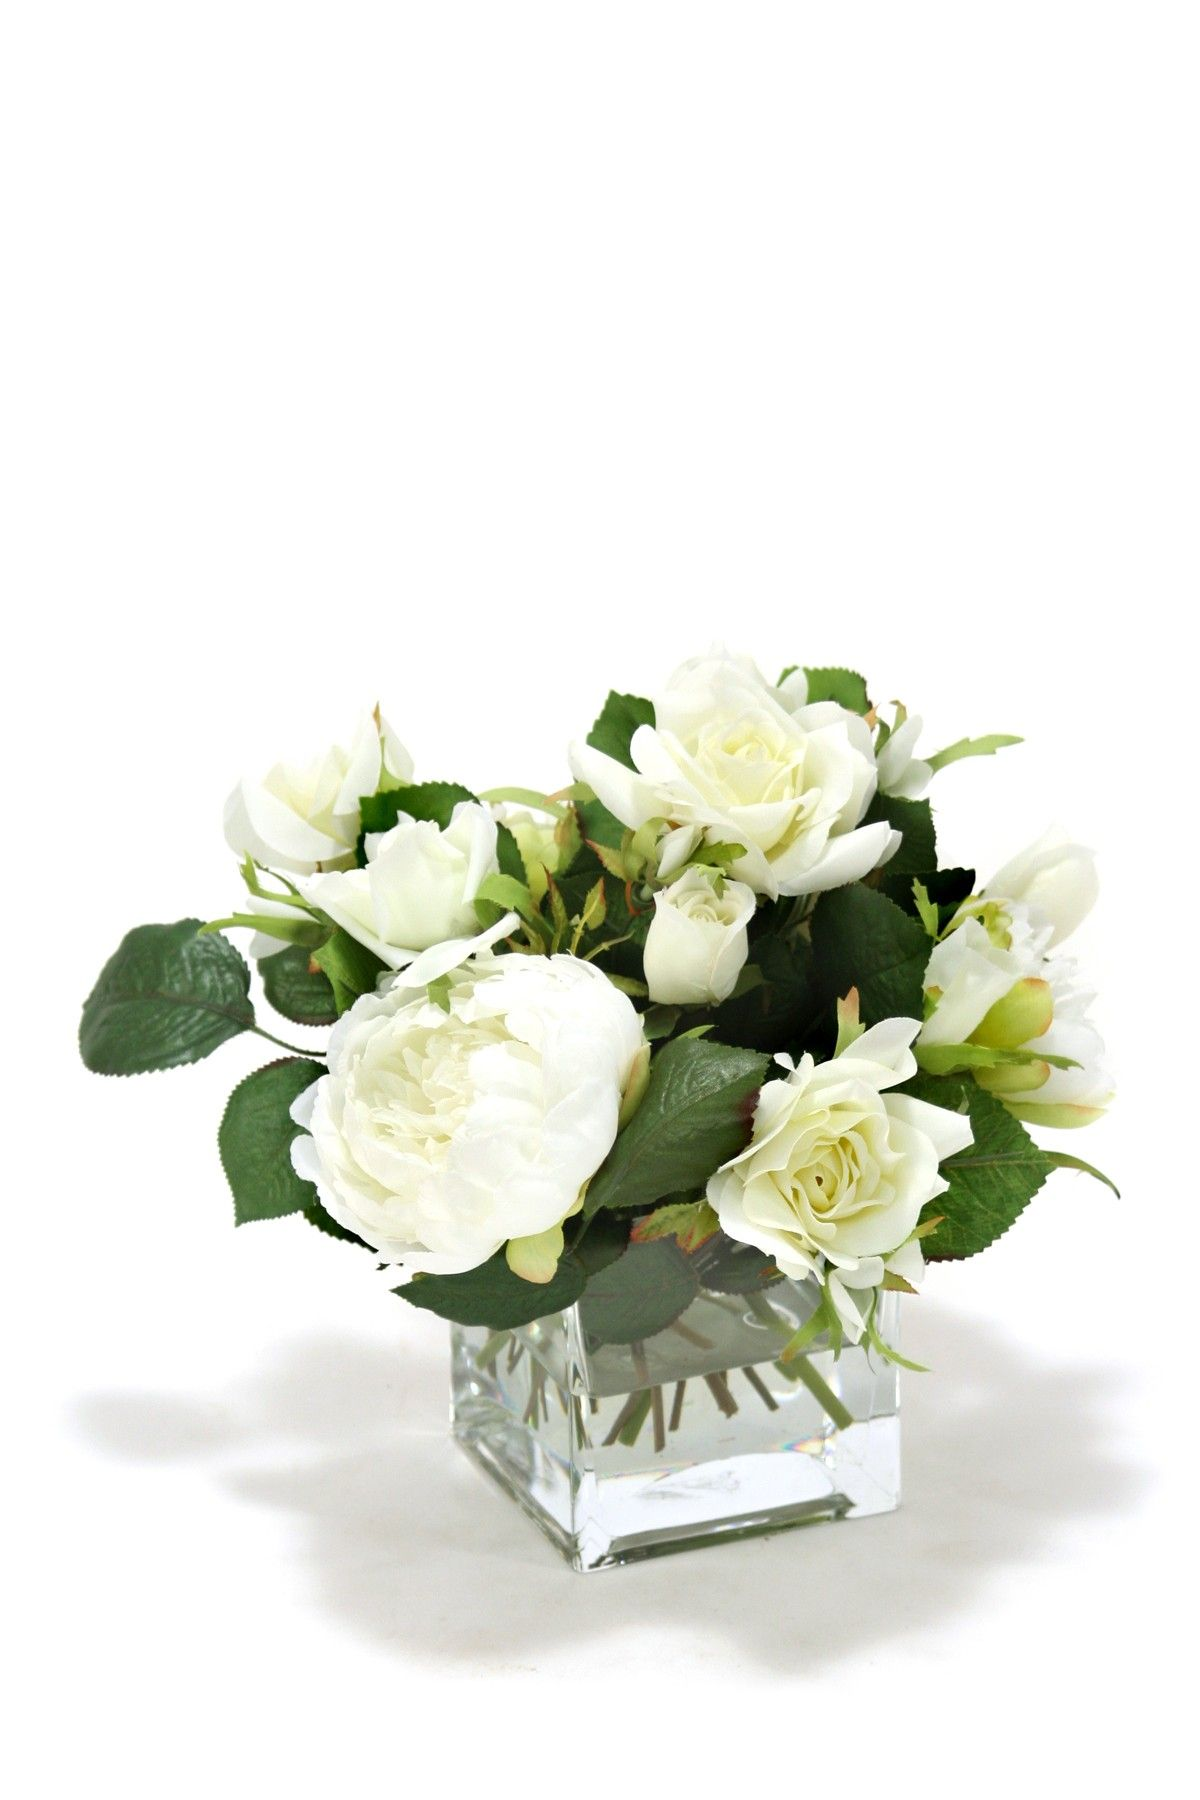 White roses and peonies in clear square vase on hautelook pretty white roses and peonies in clear square vase on hautelook reviewsmspy